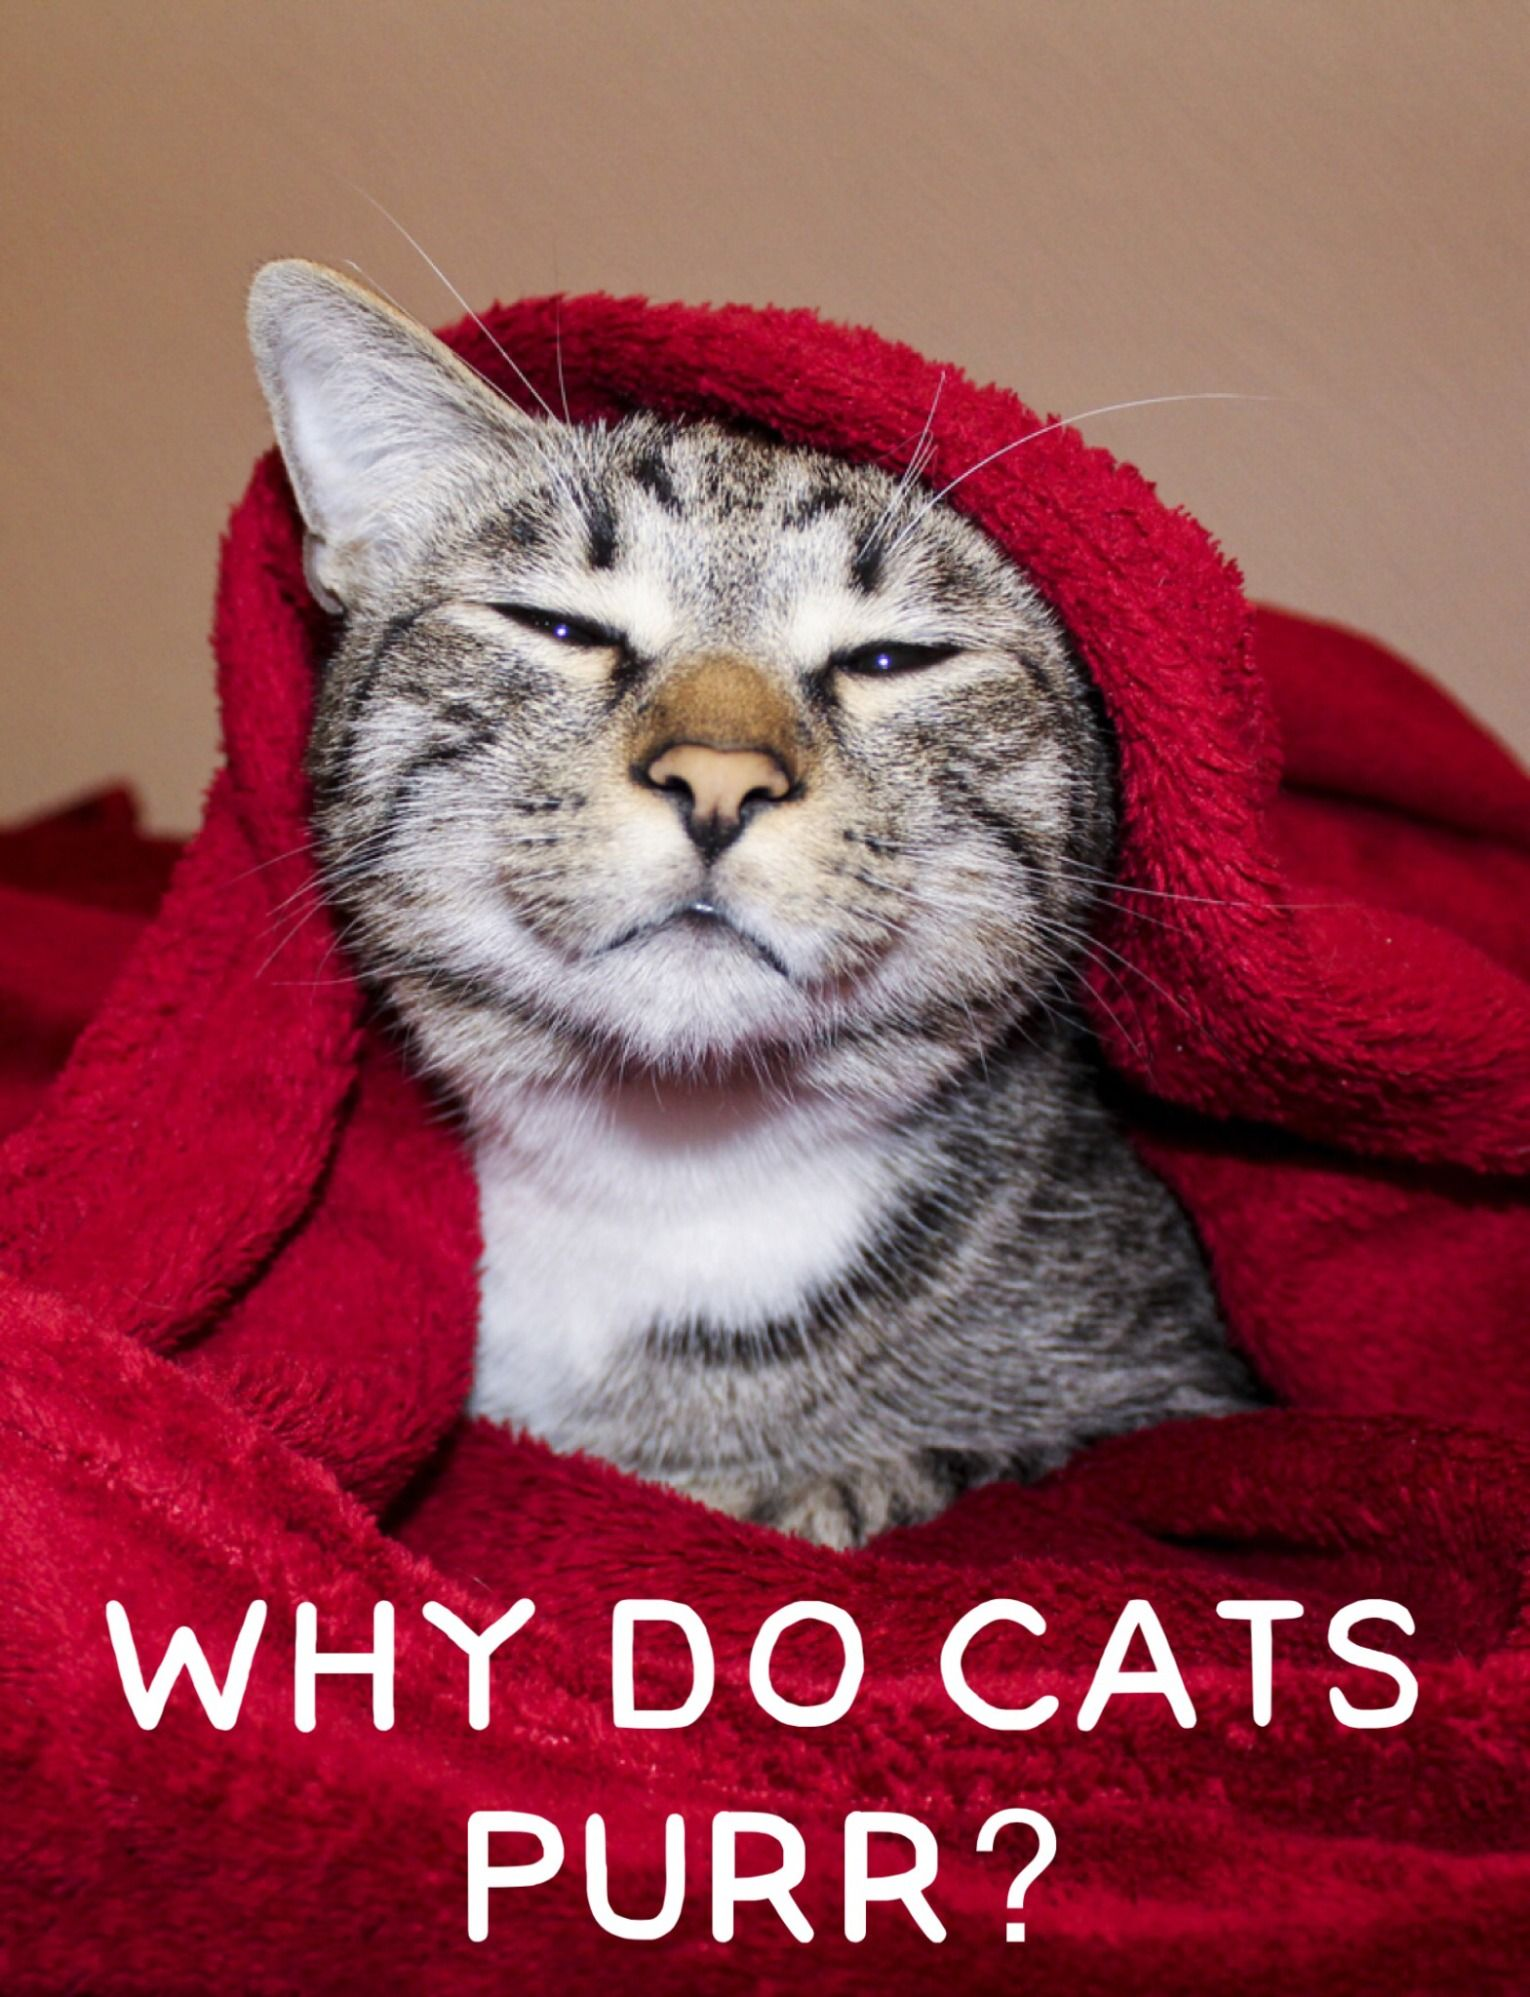 Why do cats purr And 6 other mon cat questions Answered by